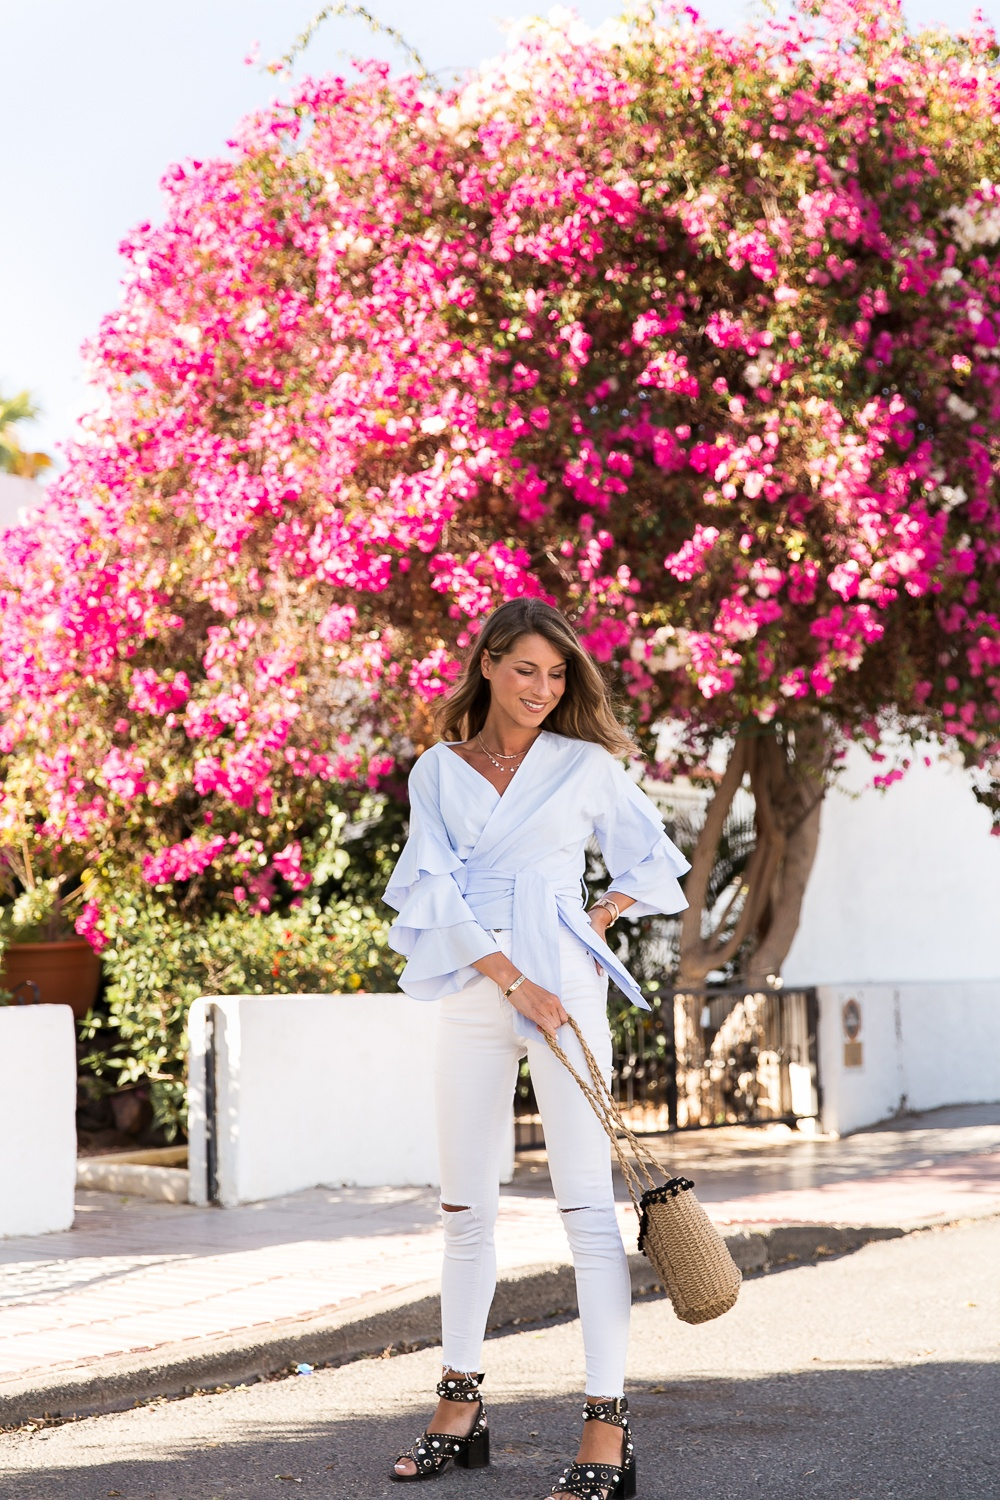 Wrap Blouse, white jeans, studded sandals & the pink tree